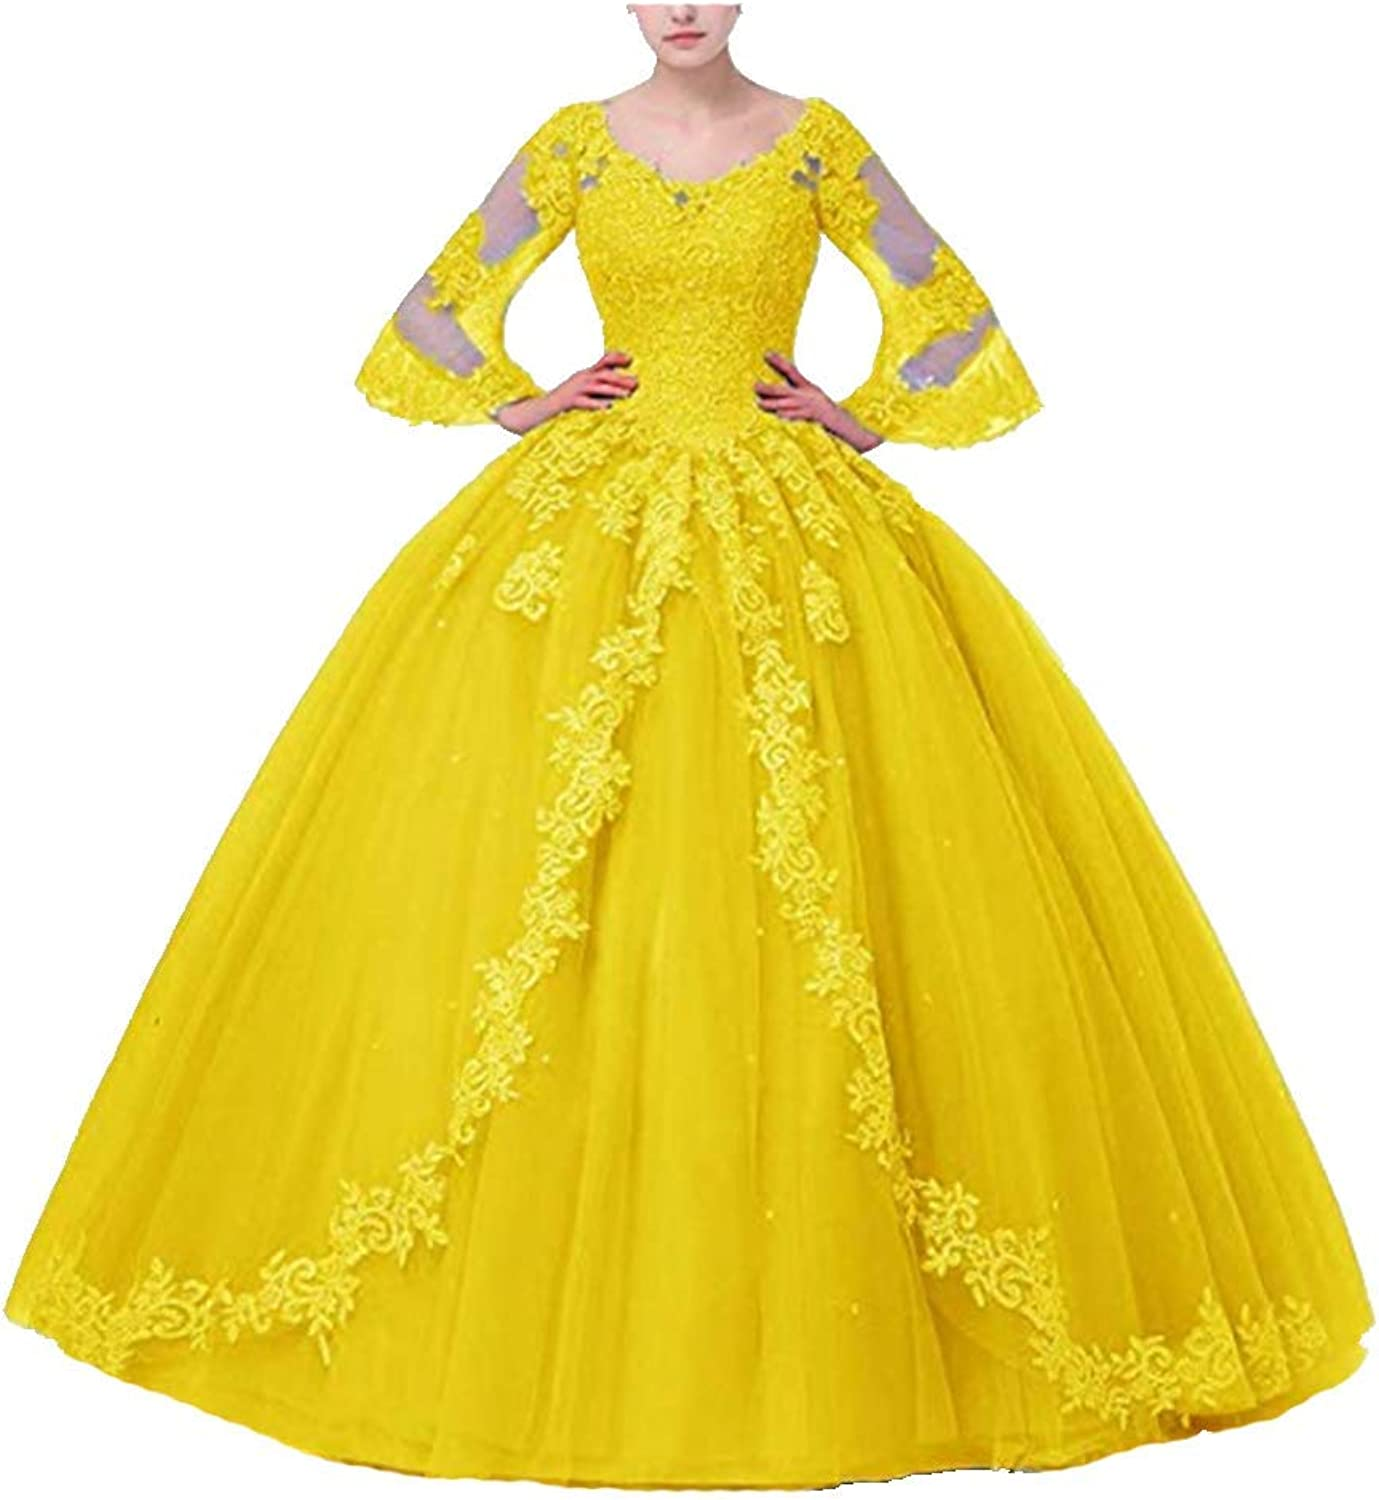 FWVR Women's Appliques Long Sleeves Ball Gown Sweet 16 Quinceanera Prom Dresses Plus Size